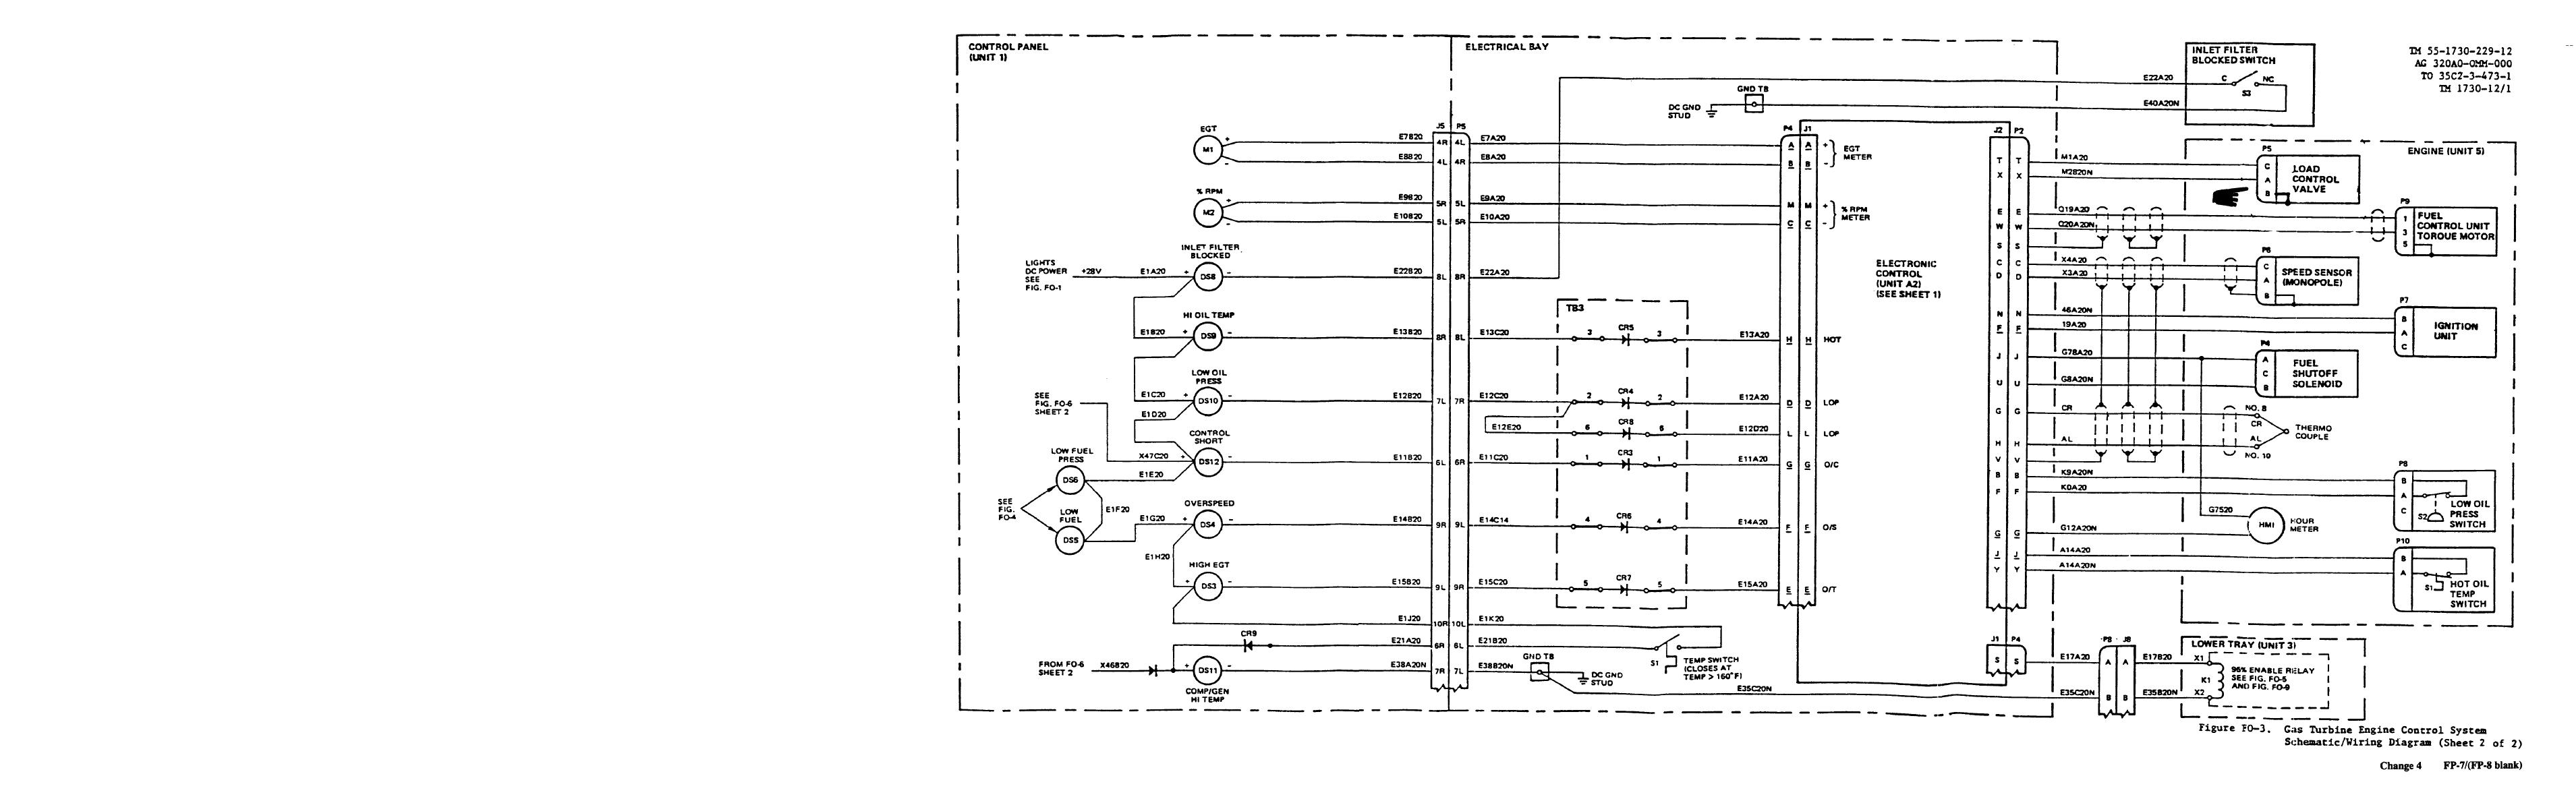 Figure Fo 3 Gas Turbine Engine Control System Schematic Wiring Diagram Tm 55 1730 229 12 Power Unit Aviation Multi Output Gted Electrical Hydraulic Pneumatic Agpu Wheel Mounted Self Propelled Towable Manual Page Navigation